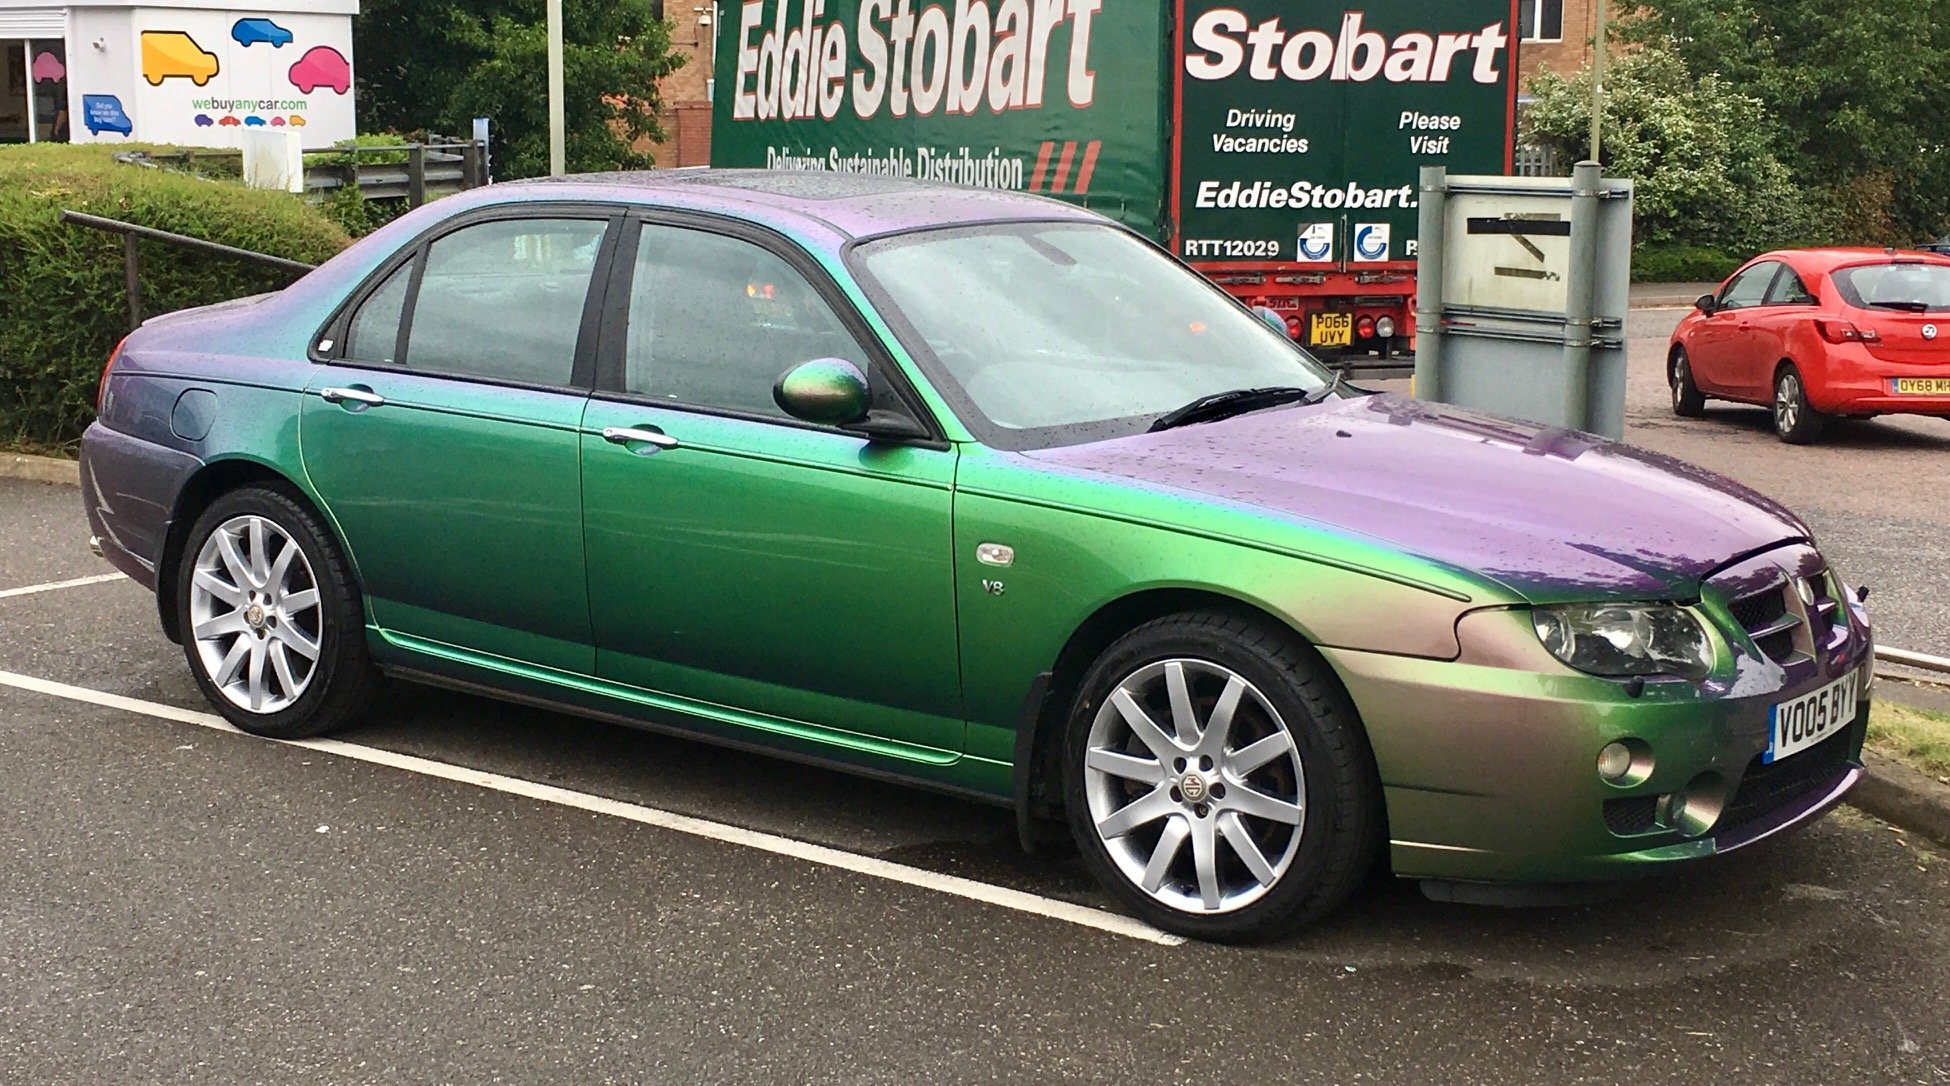 2005 MG ZT 400 SE Roush Supercharged V8 Monogram colour For Sale (picture 1 of 6)